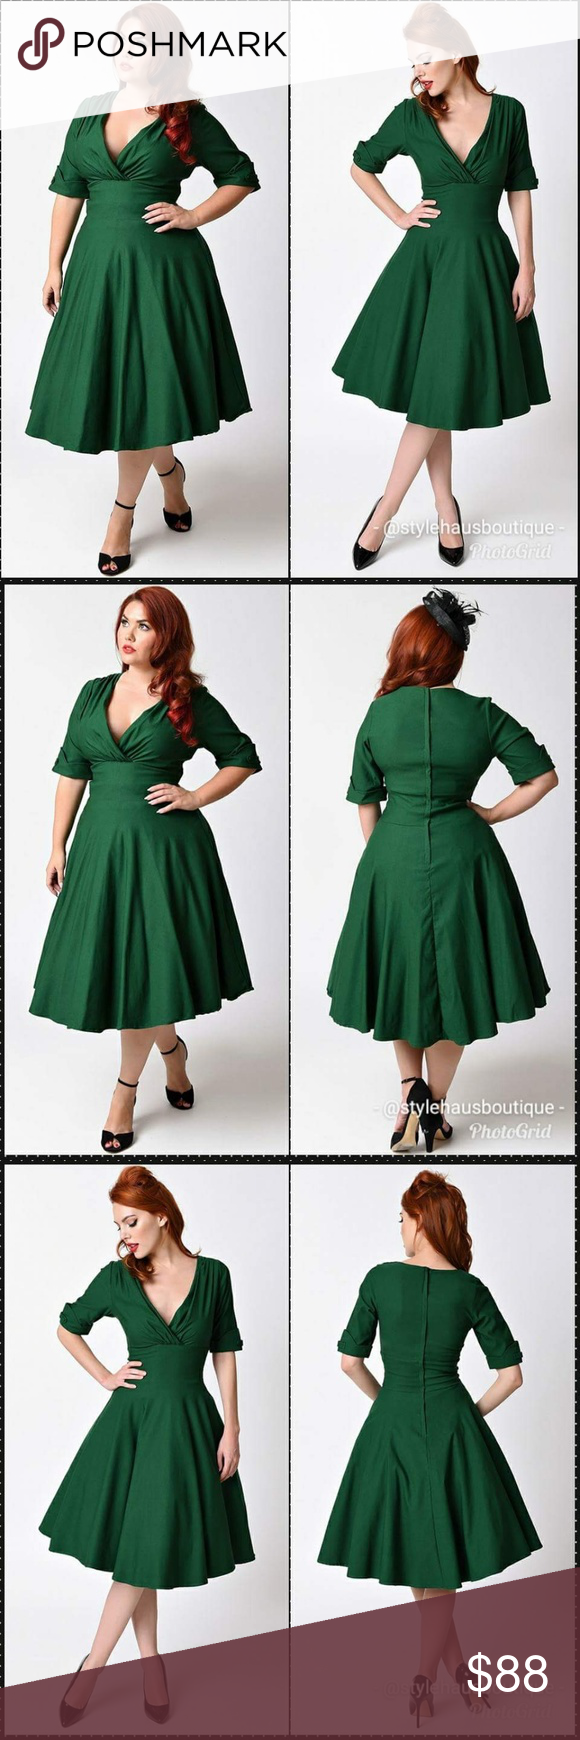 Emerald Green Swing Dress By Unique Vintage Unique Vintage Dresses Dresses Swing Dress [ 1740 x 580 Pixel ]